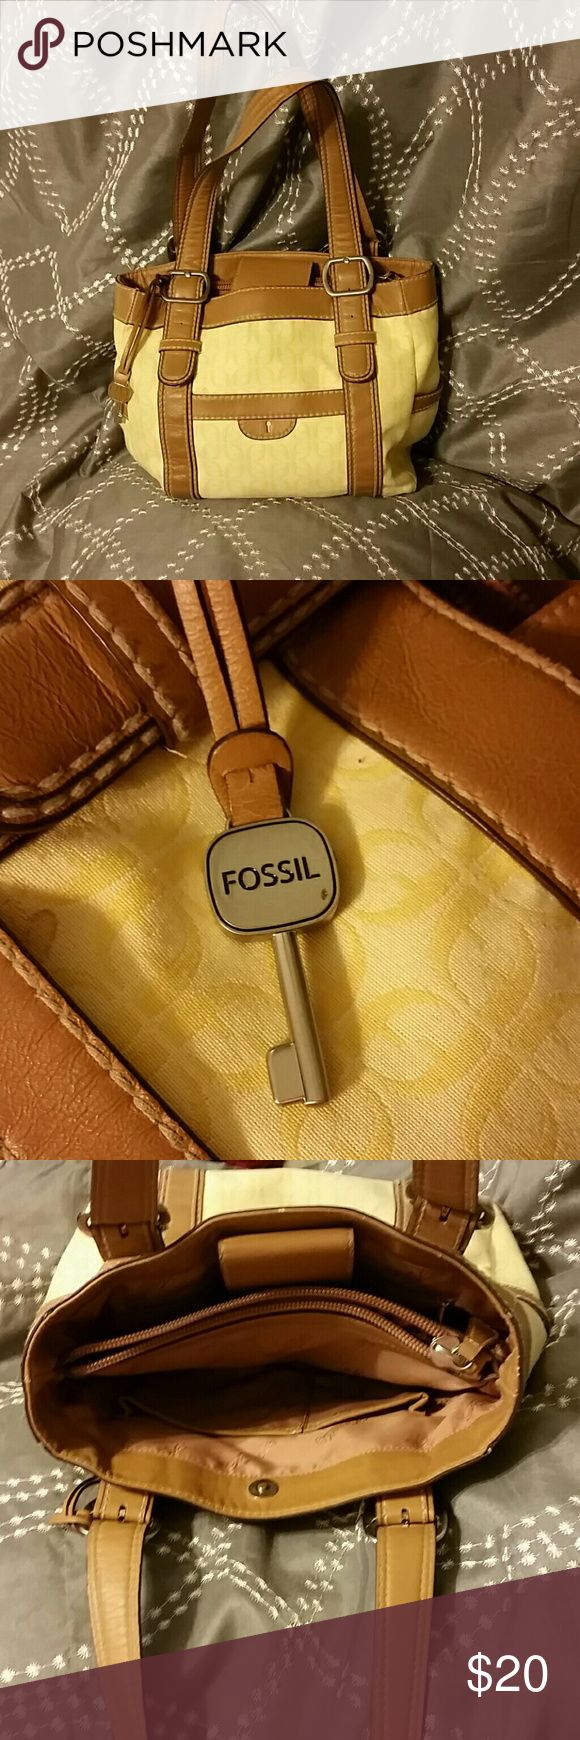 Fossil Purse Small fossil purse, good used condition. Needs to be cleaned but in good condition. Fossil Bags Satchels